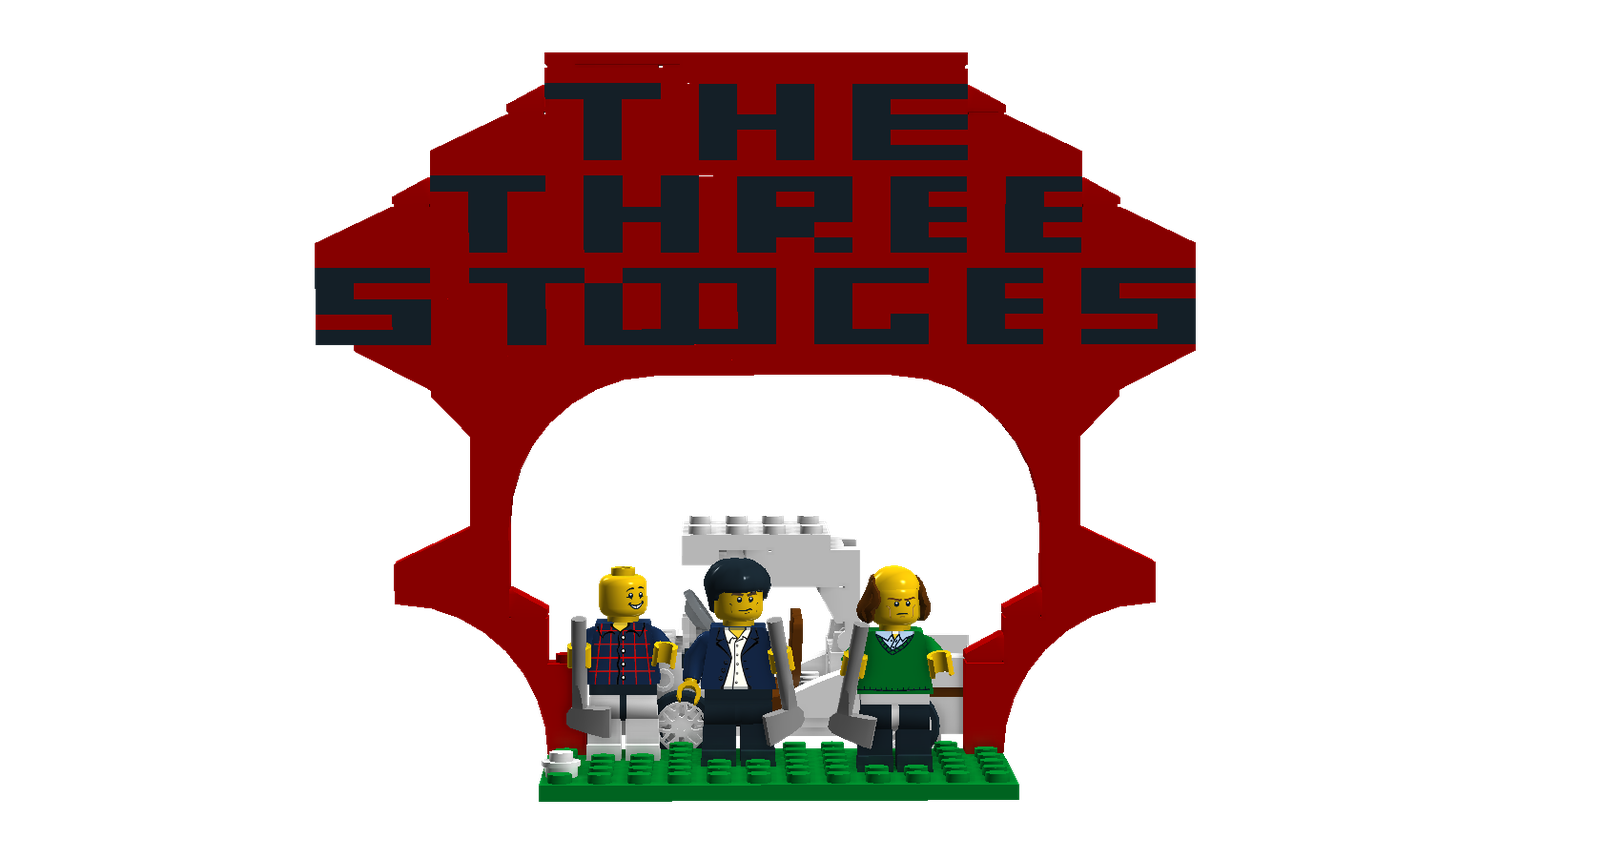 Legos clipart one. Lego ideas product the